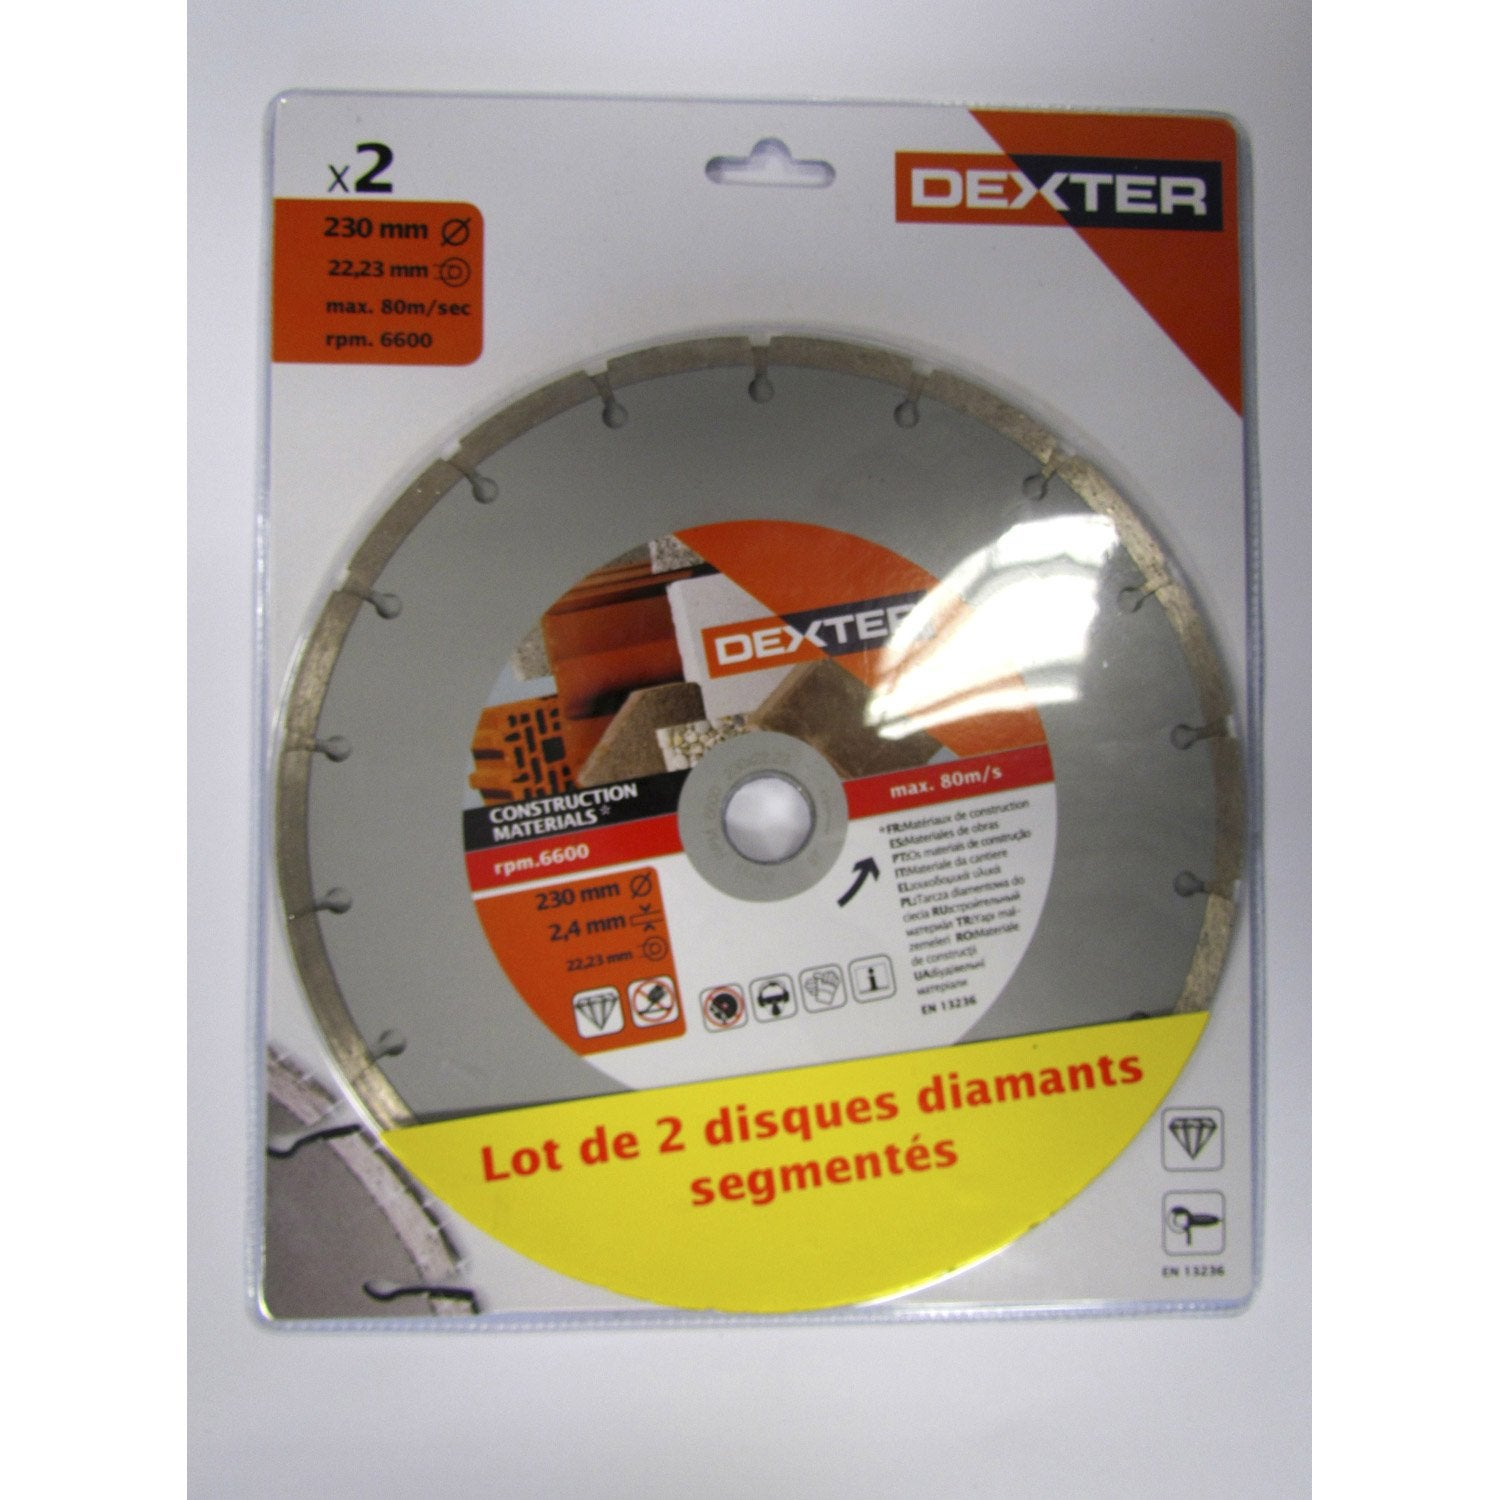 2 disques diamant tron onner pour mat riaux de construction dexter 230 mm leroy merlin. Black Bedroom Furniture Sets. Home Design Ideas